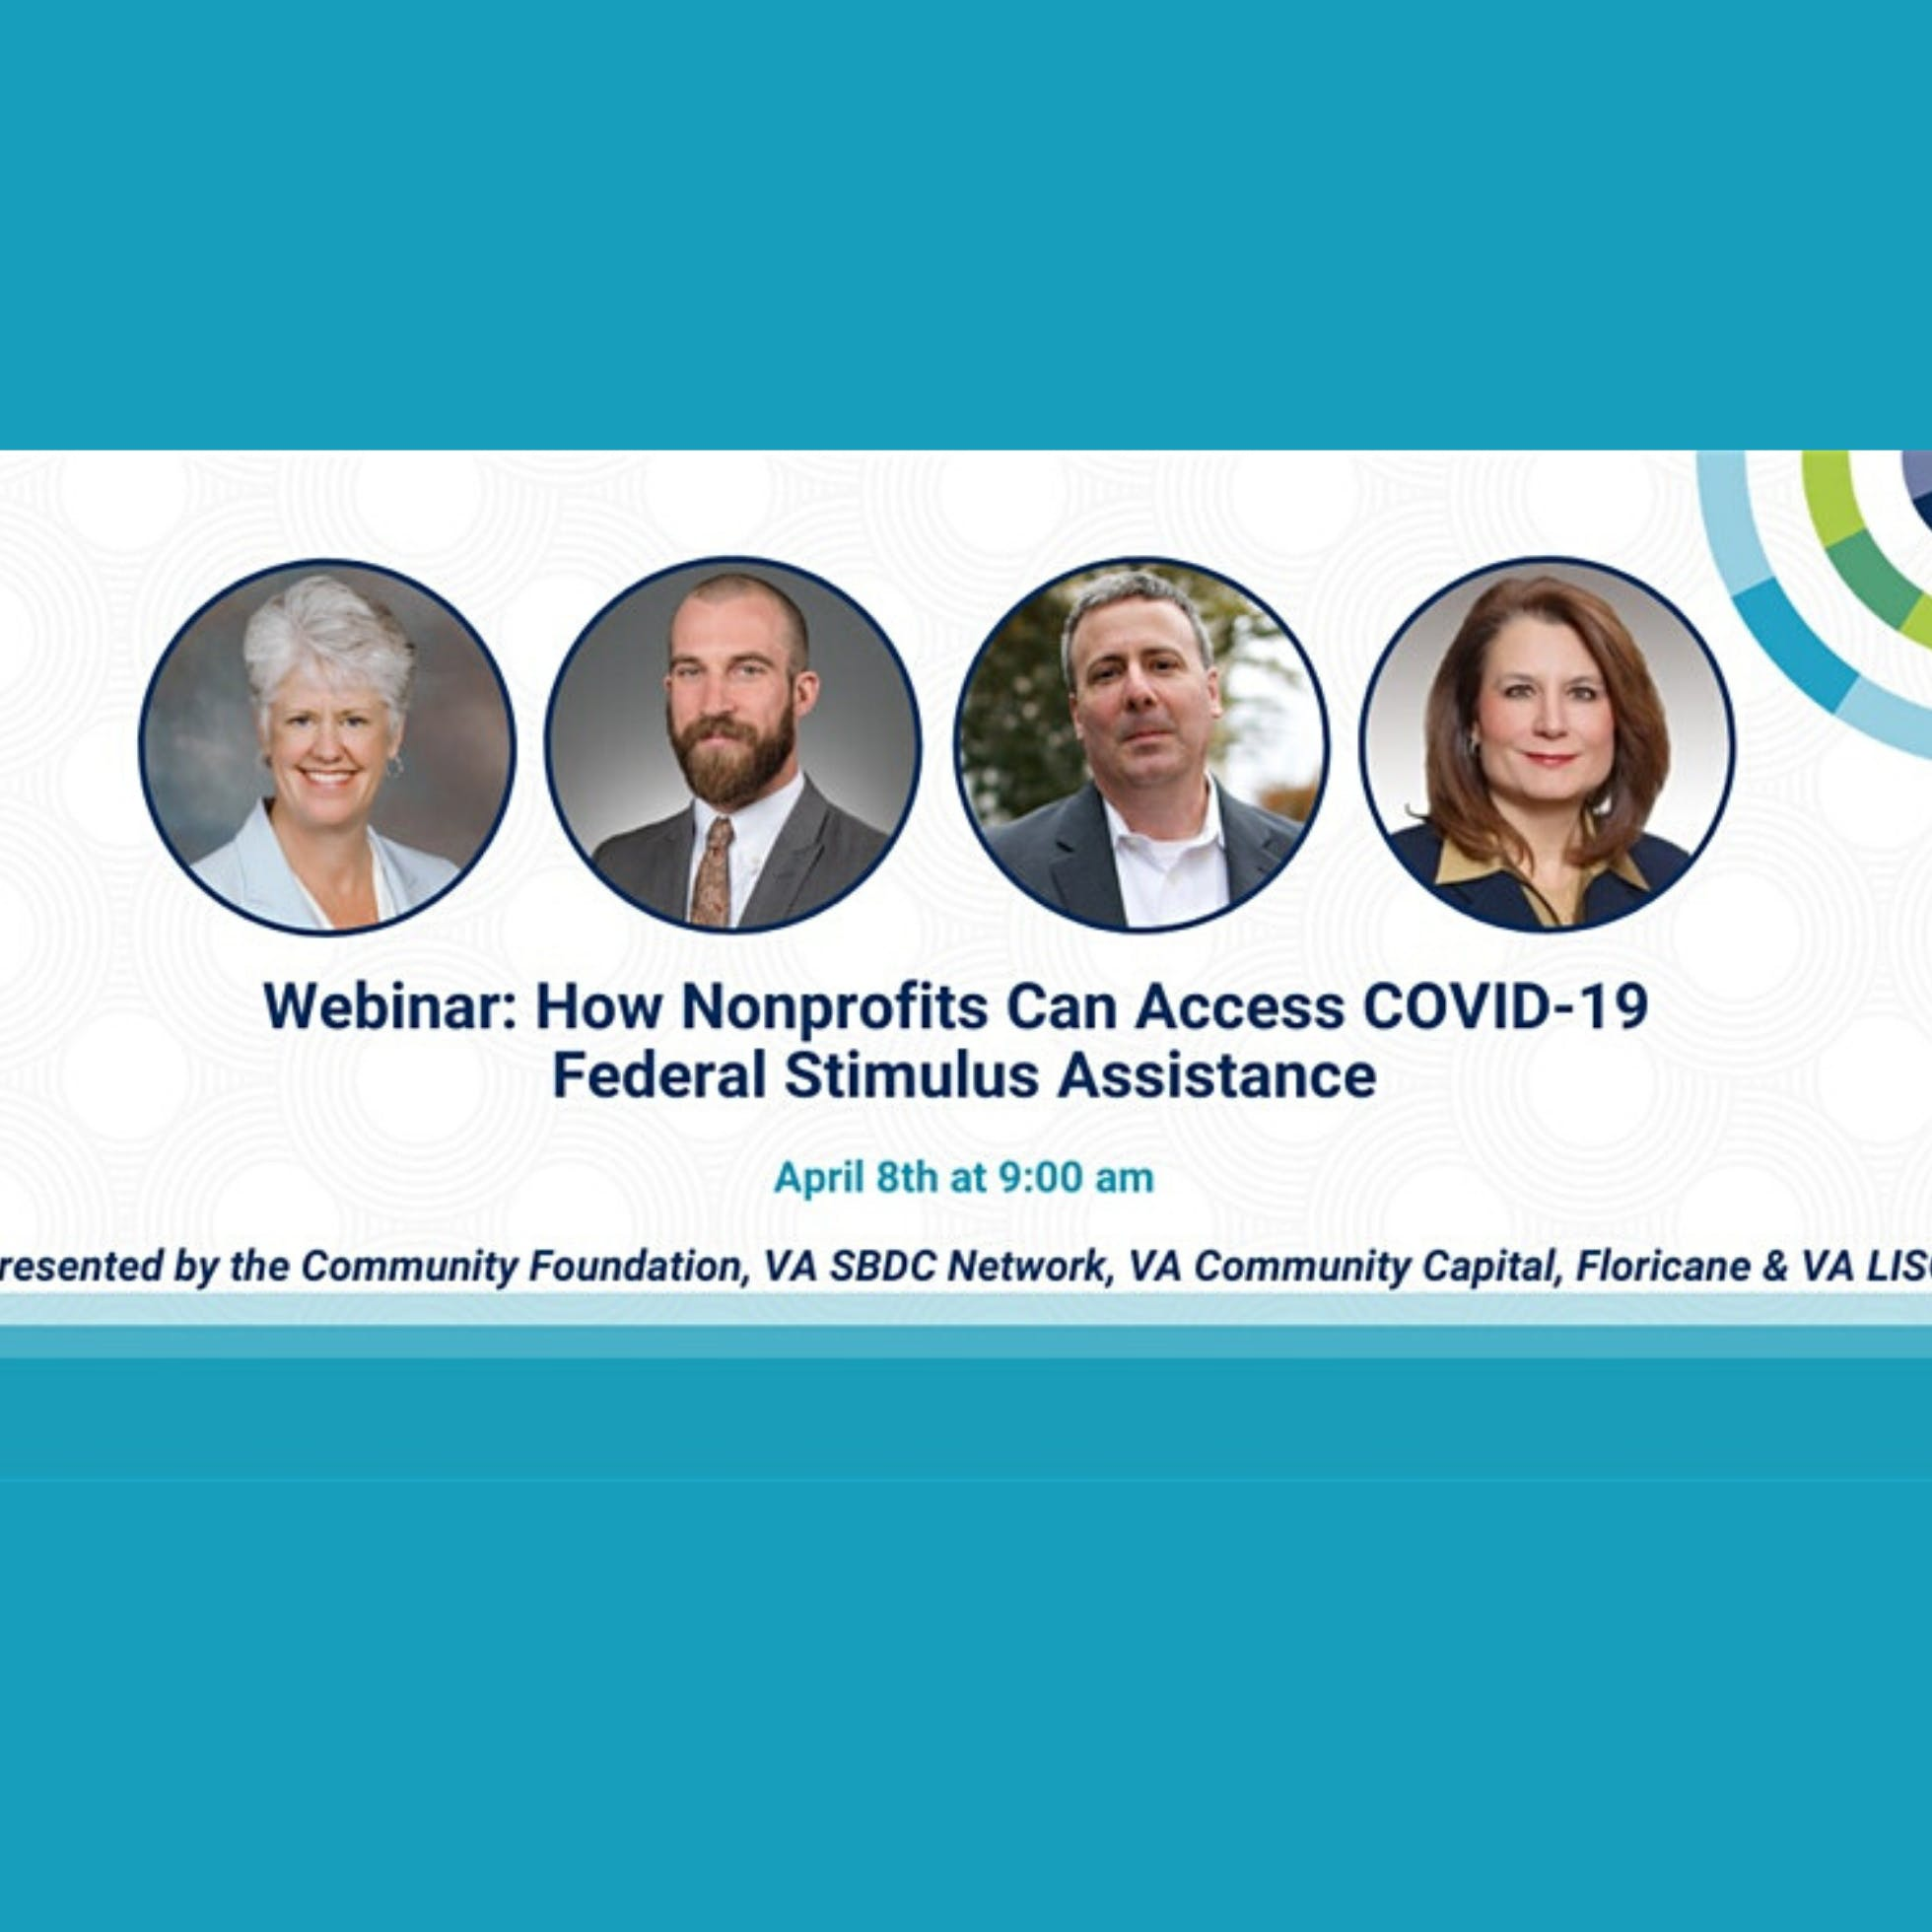 Webinar: How Nonprofits Can Access COVID-19 Federal Stimulus Assistance